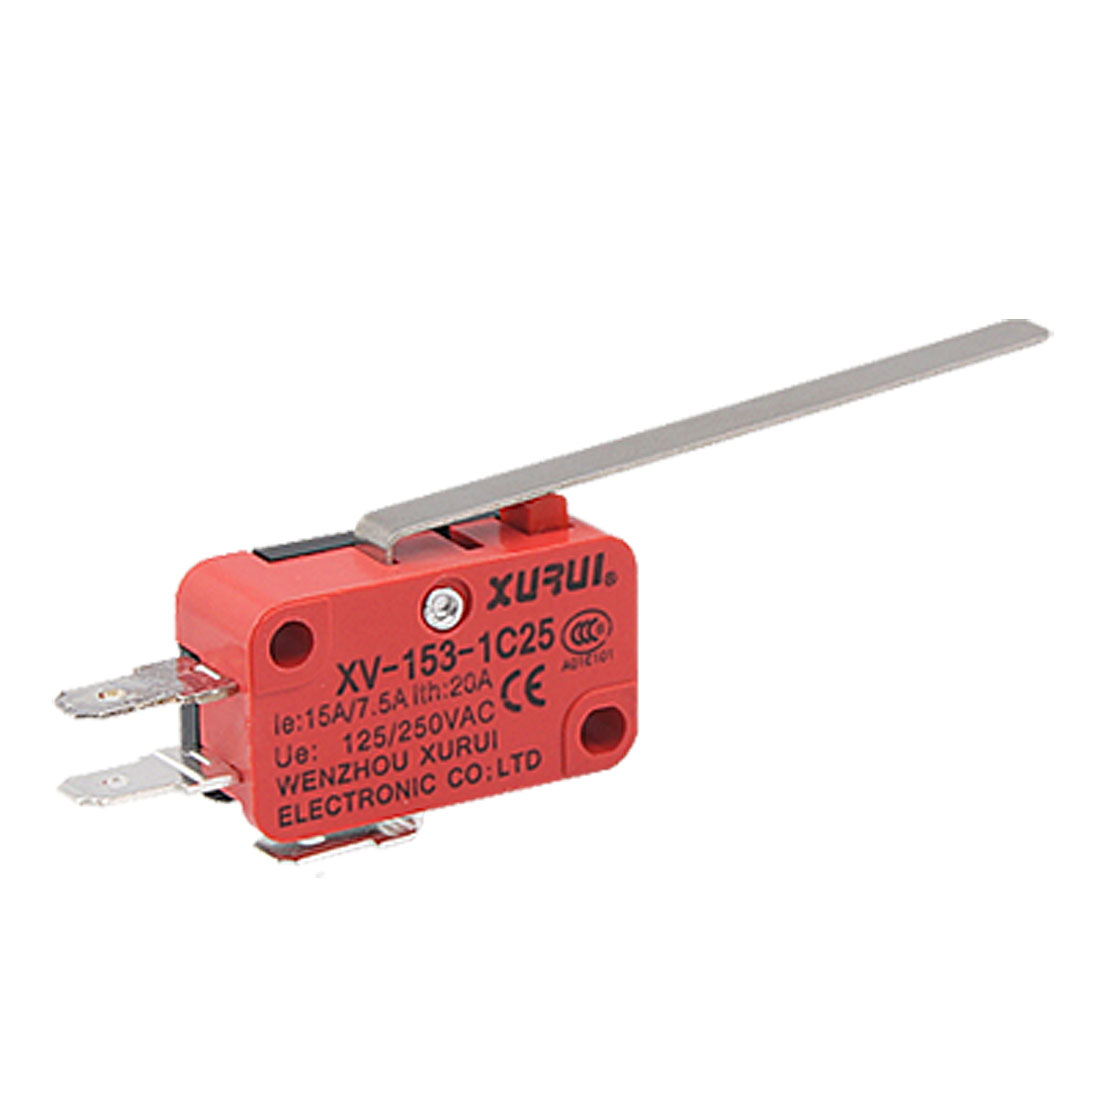 XV-153-1C25 Long Straight Hinge Lever Miniature Micro Limit Switch Snap Action